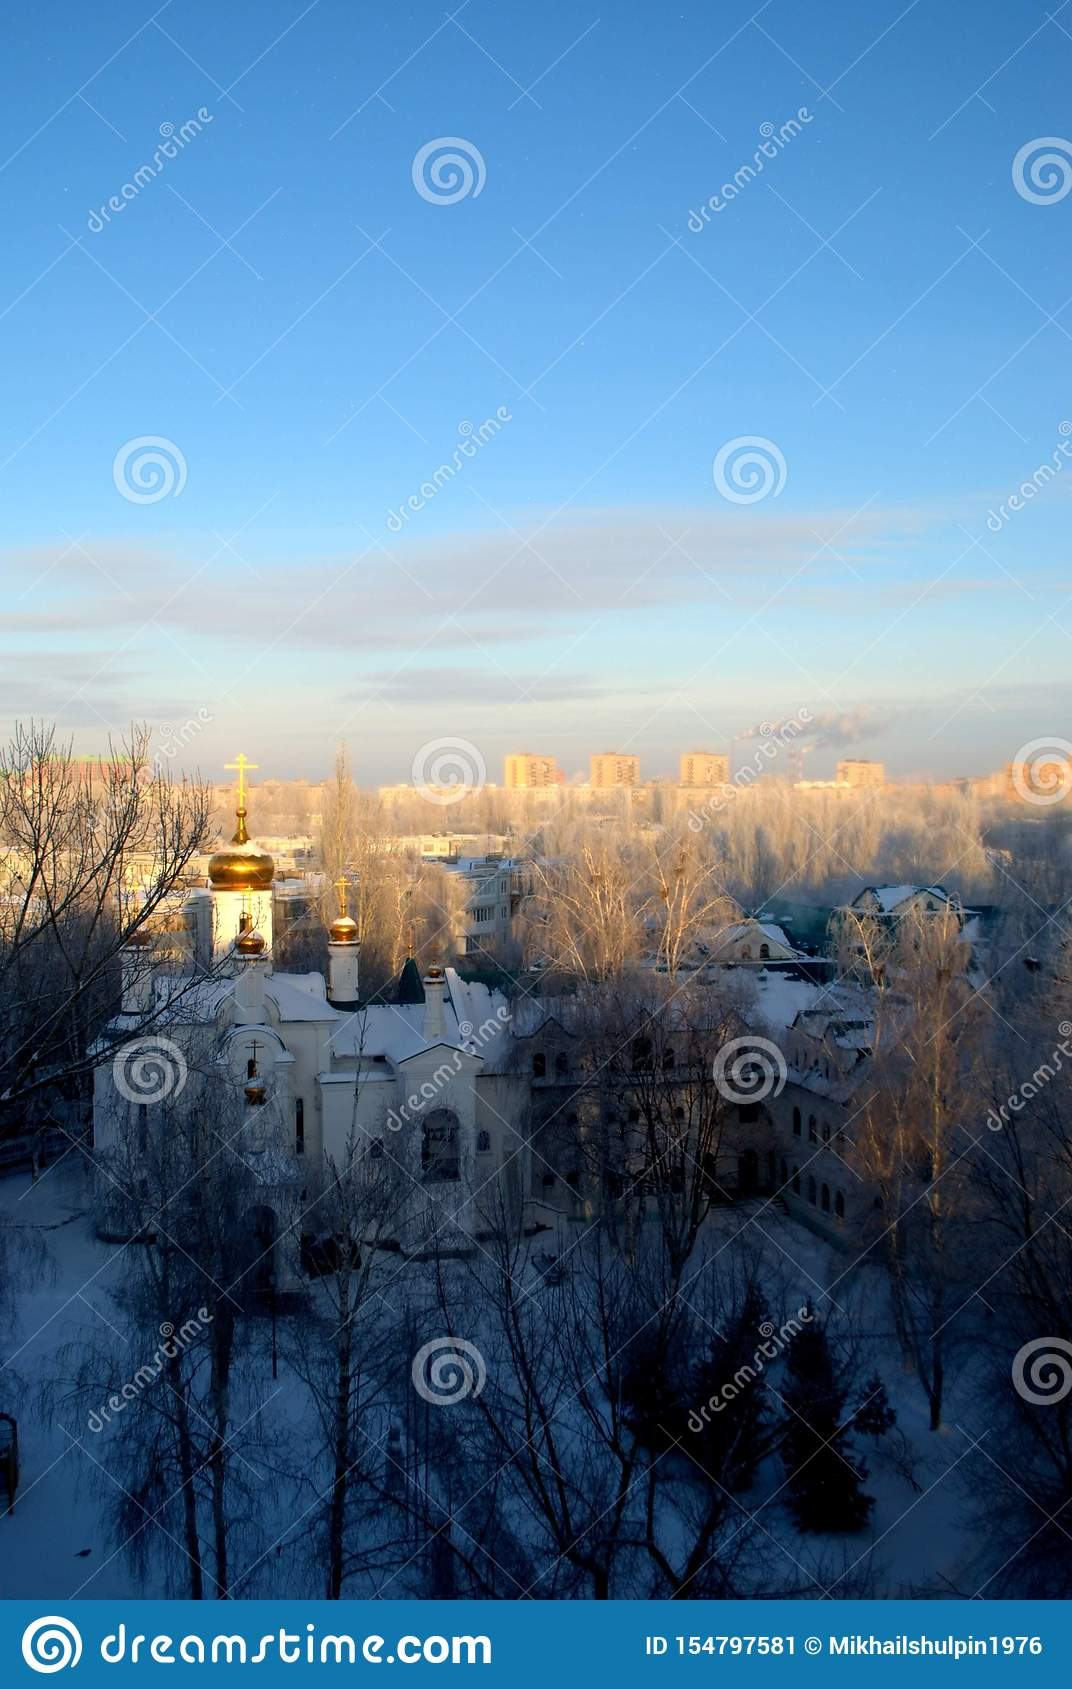 View of the Church in the name of All Saints in the Russian land shone on an early frosty morning.